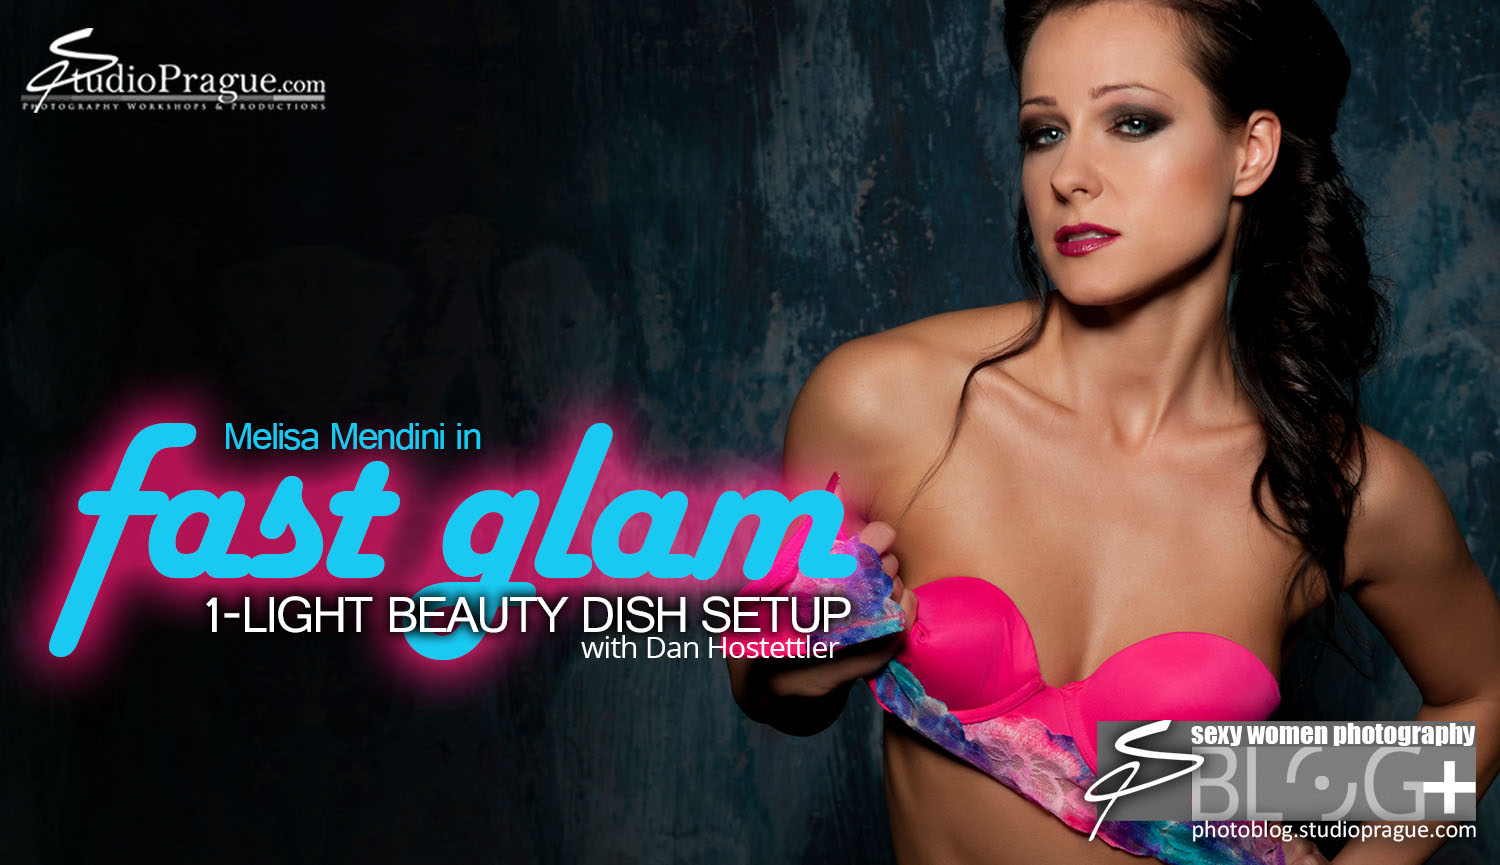 Header Imagery – 'Fast Glam' – Glamour Photography with Melisa Mendini